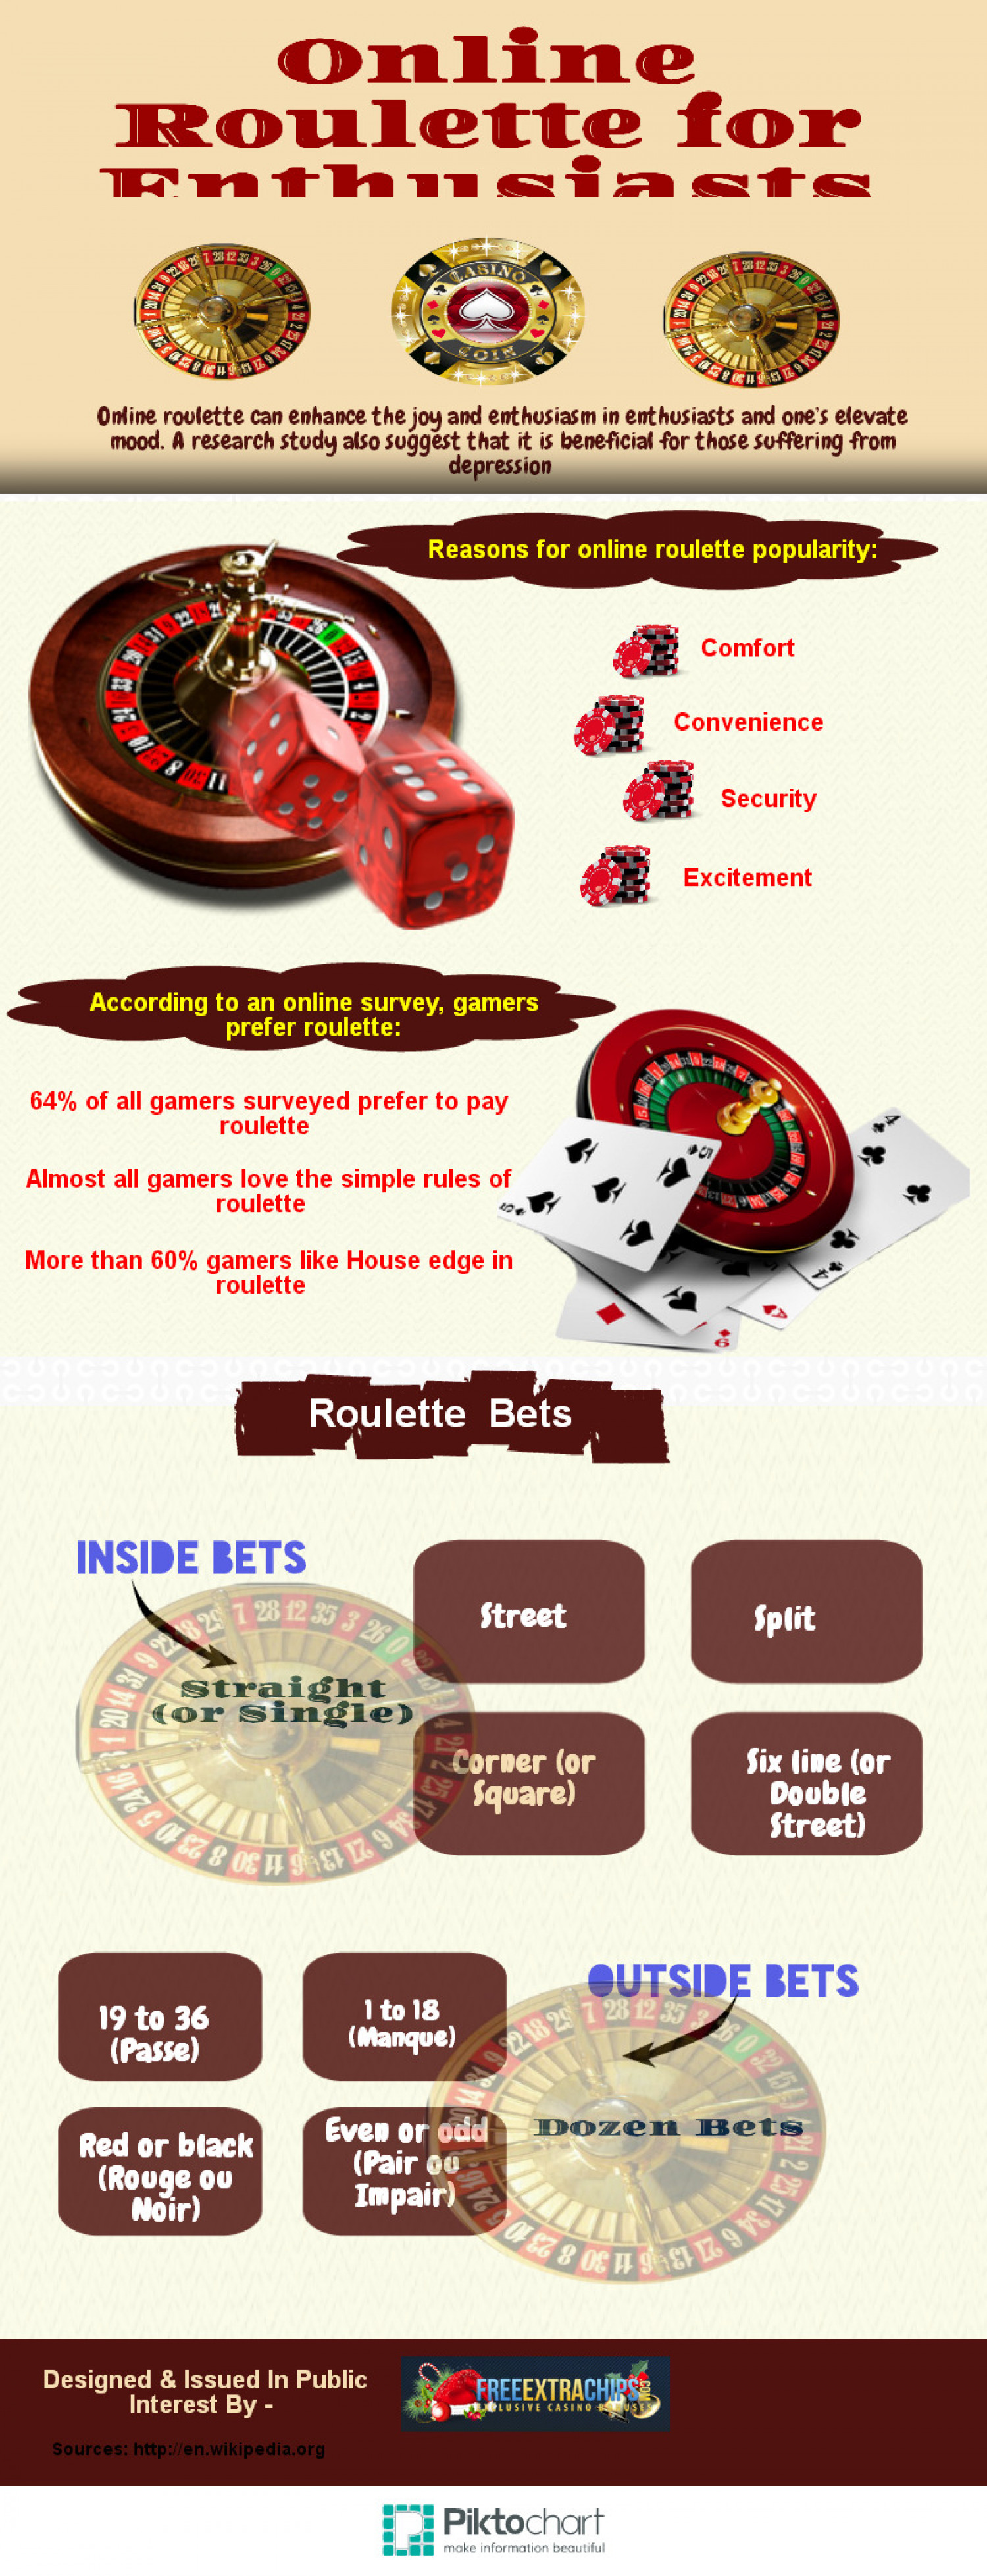 Online Roulette for Enthusiasts Infographic